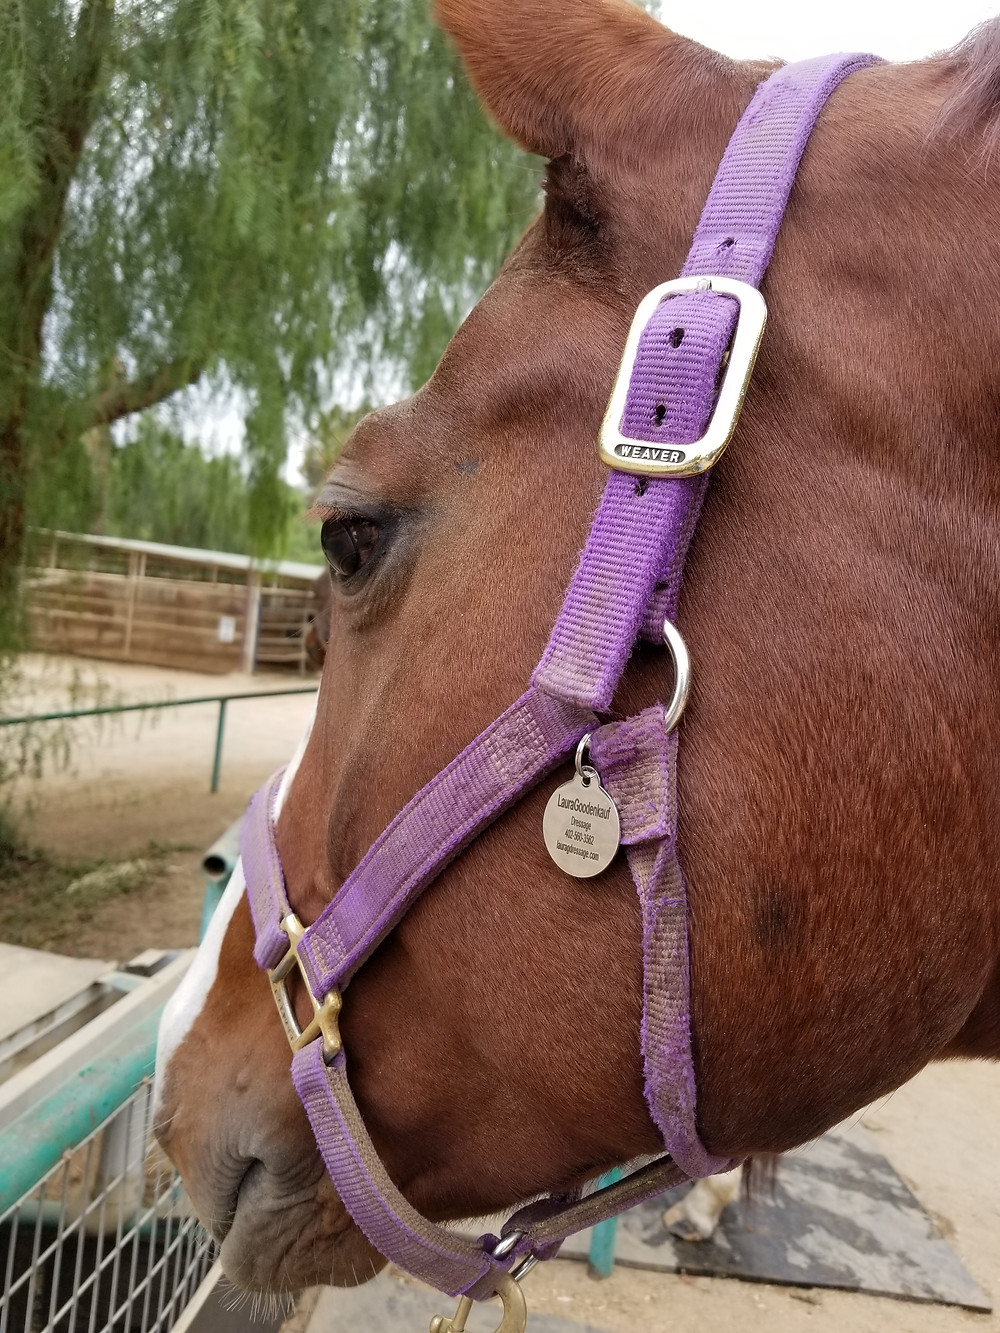 A horse wearing an ID Tag for wild fire evacuation in Los Angeles.